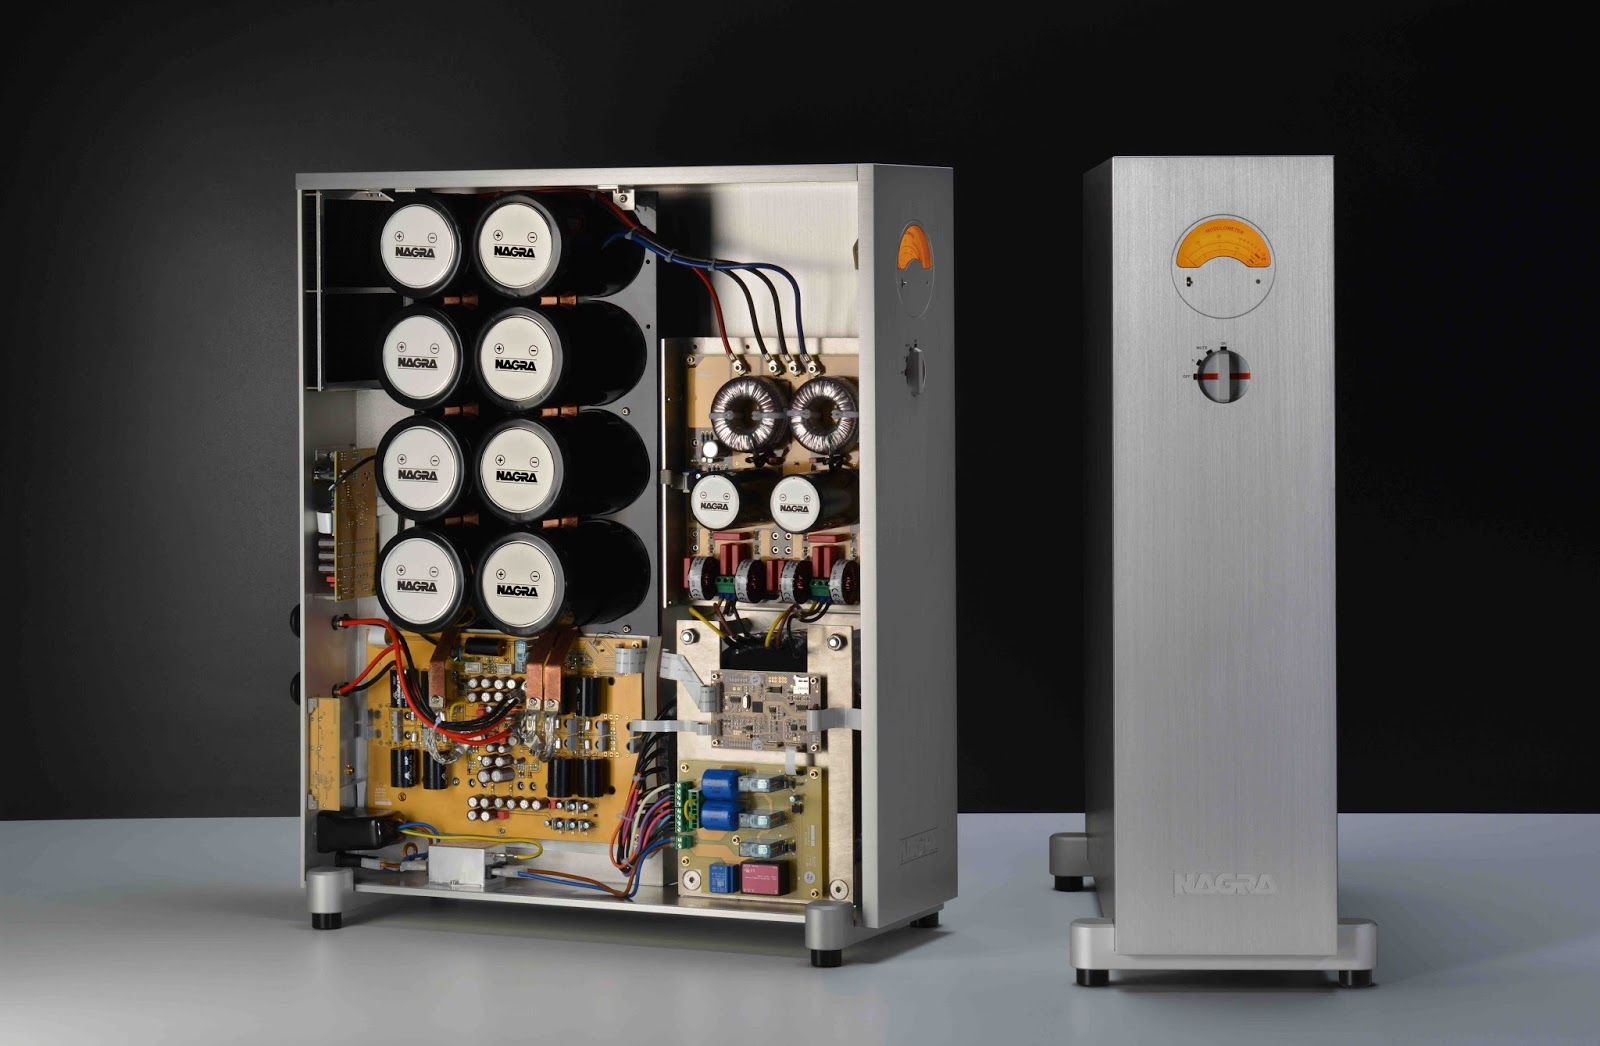 Nagra's HD DAC Archives